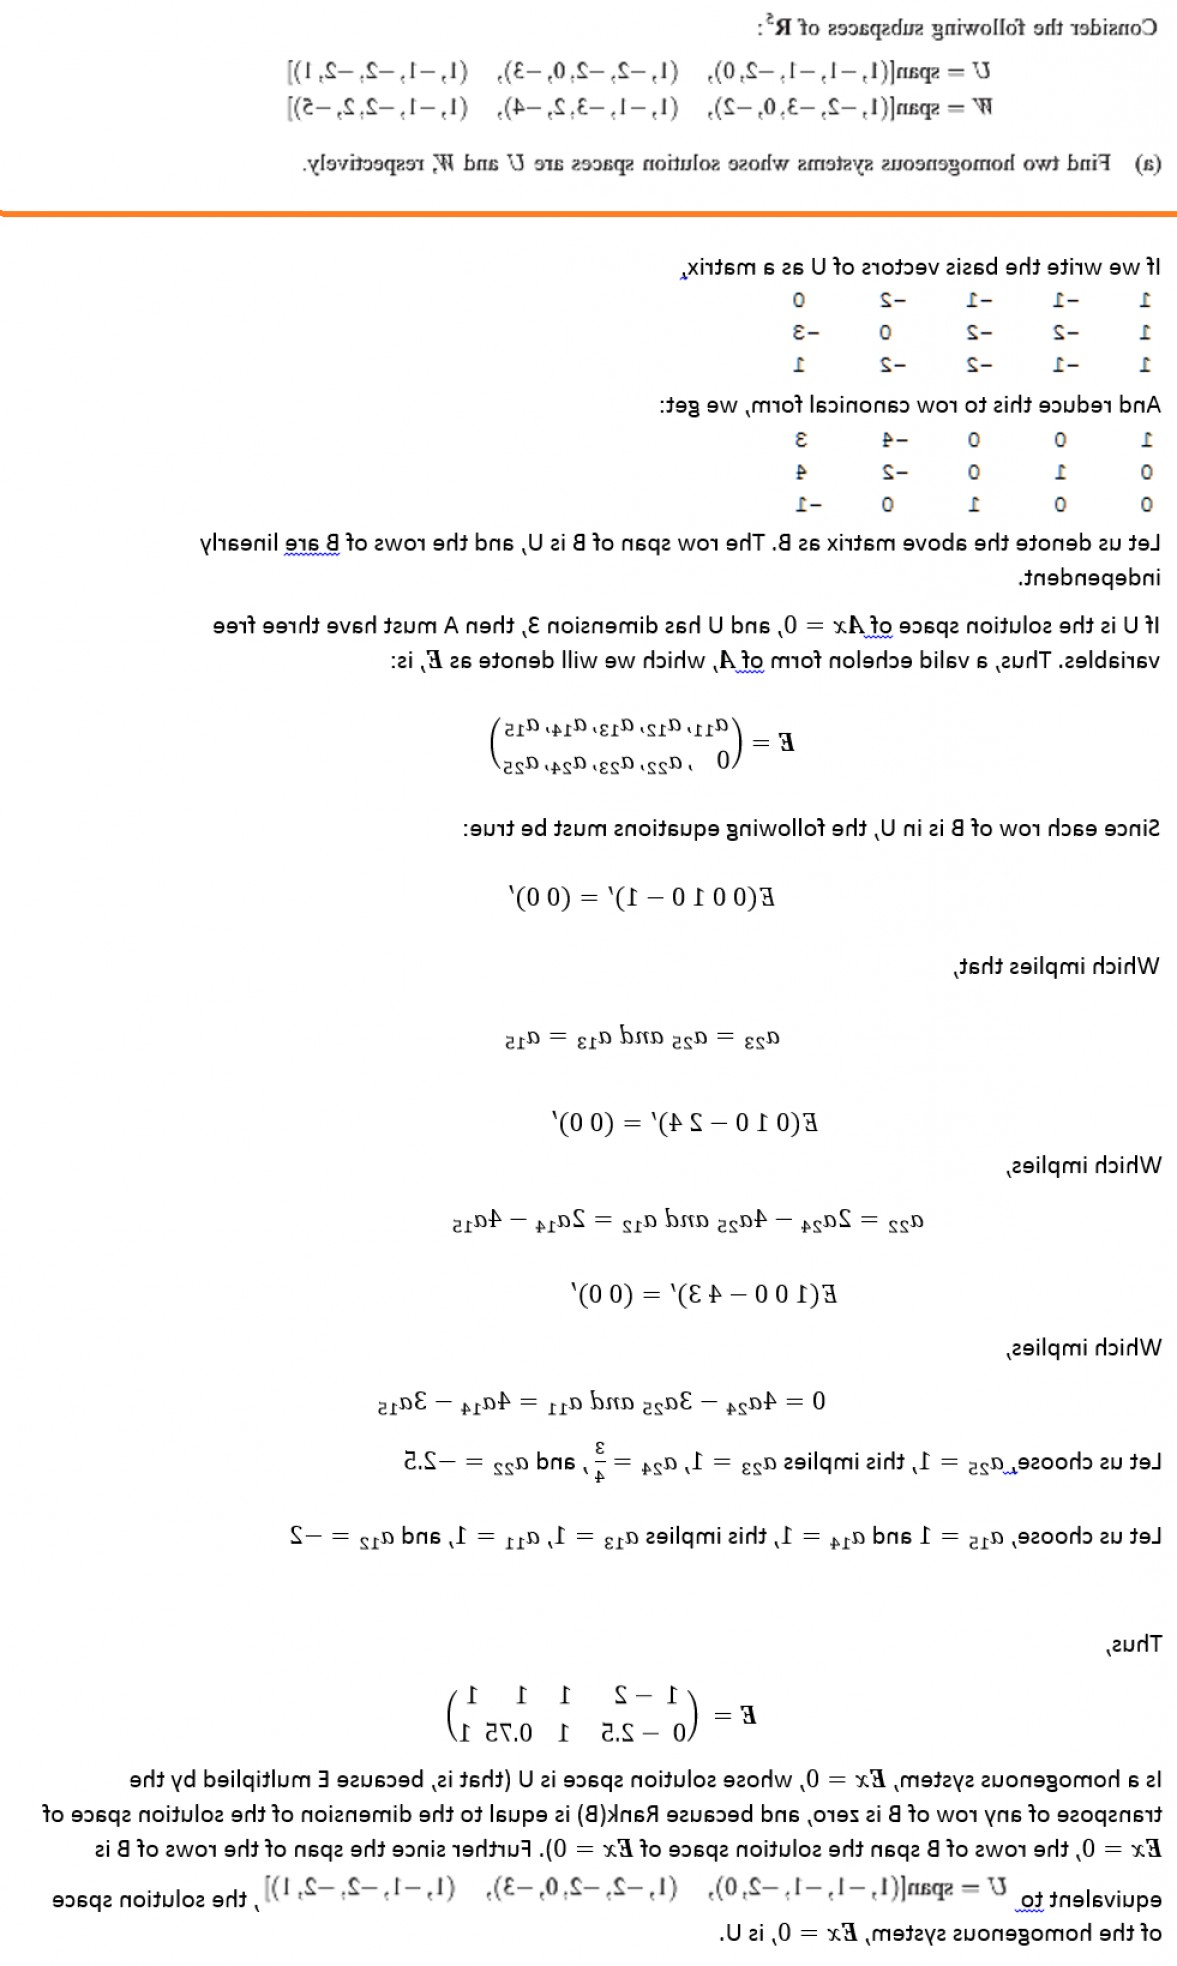 Linear Algebra Vector Zero: Is There A Simple Way To Find A Matrix Whose Null Space Is The Span Of A Given S